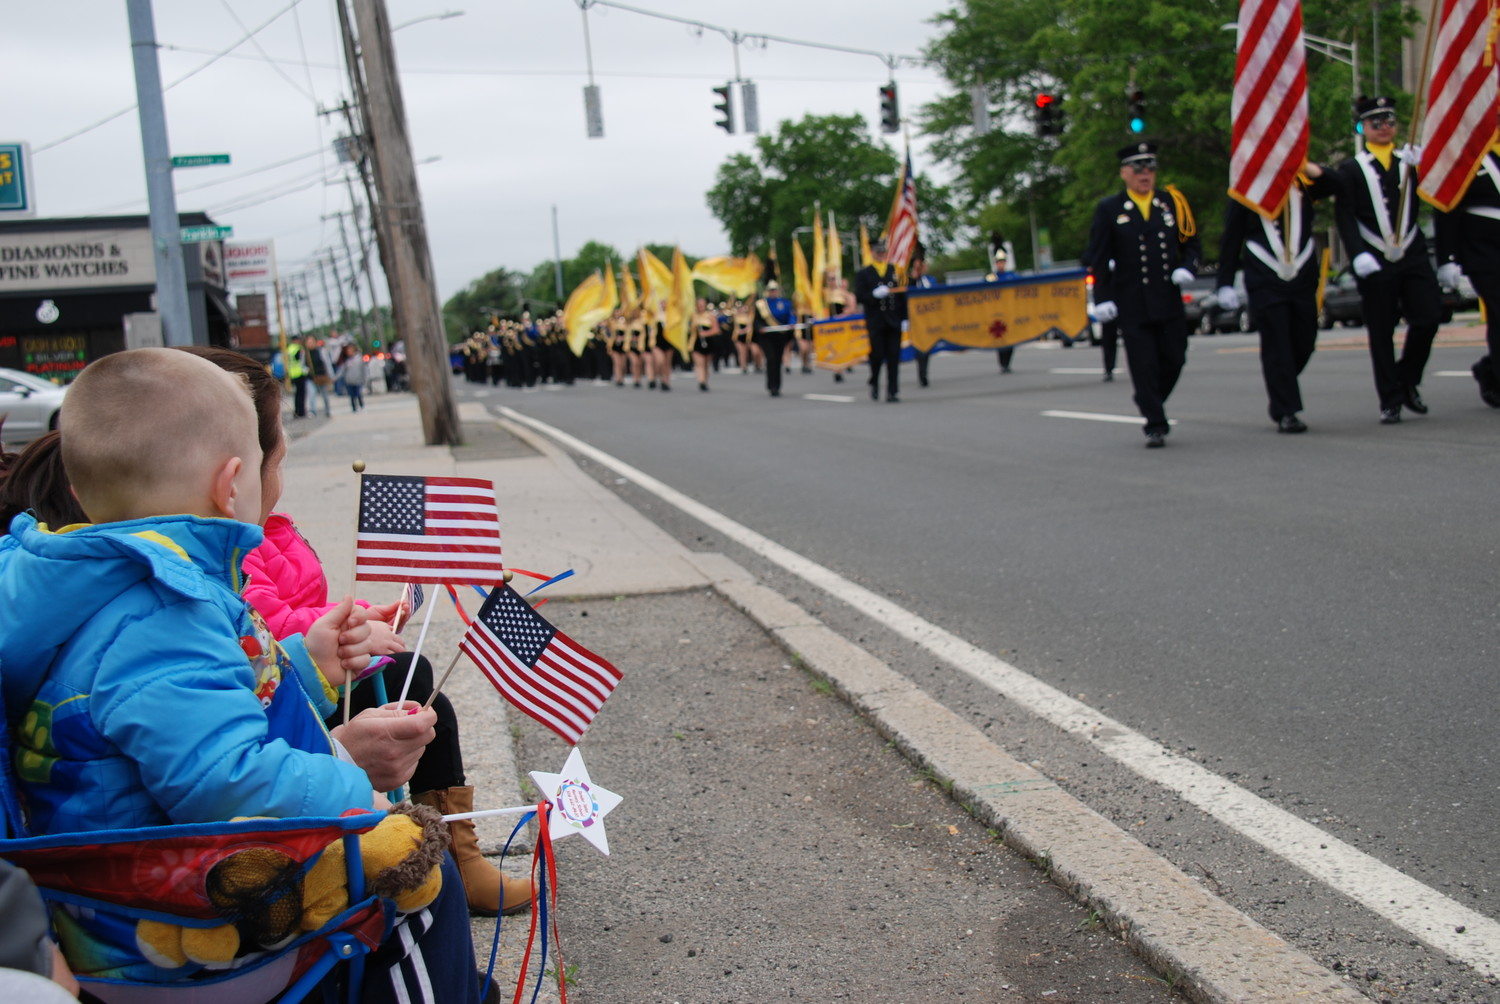 East Meadow residents watched as community organizations and leaders marched in the community's Memorial Day parade.